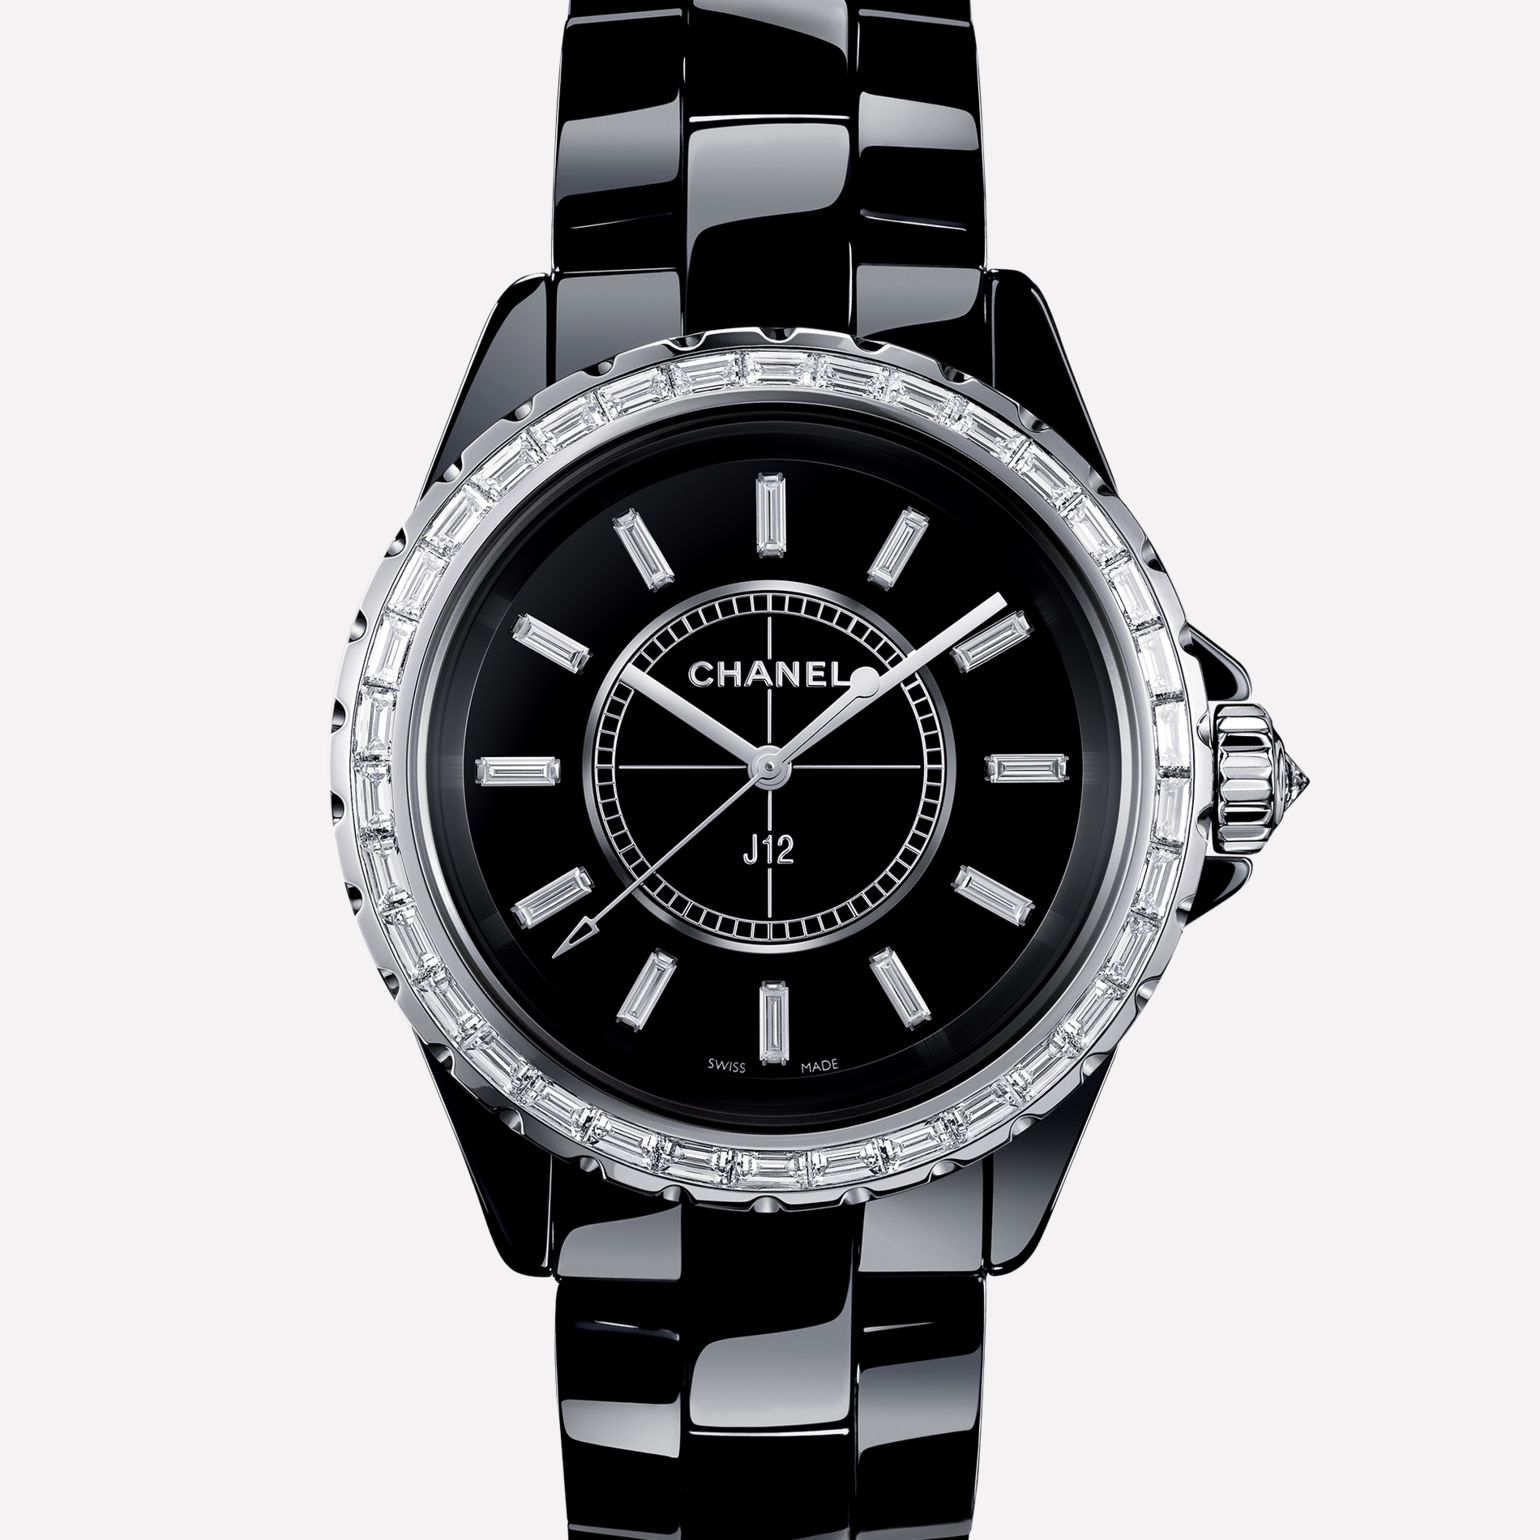 J12 Jewelry Watch Black ceramic and white gold, baguette-cut diamond bezel and indicators